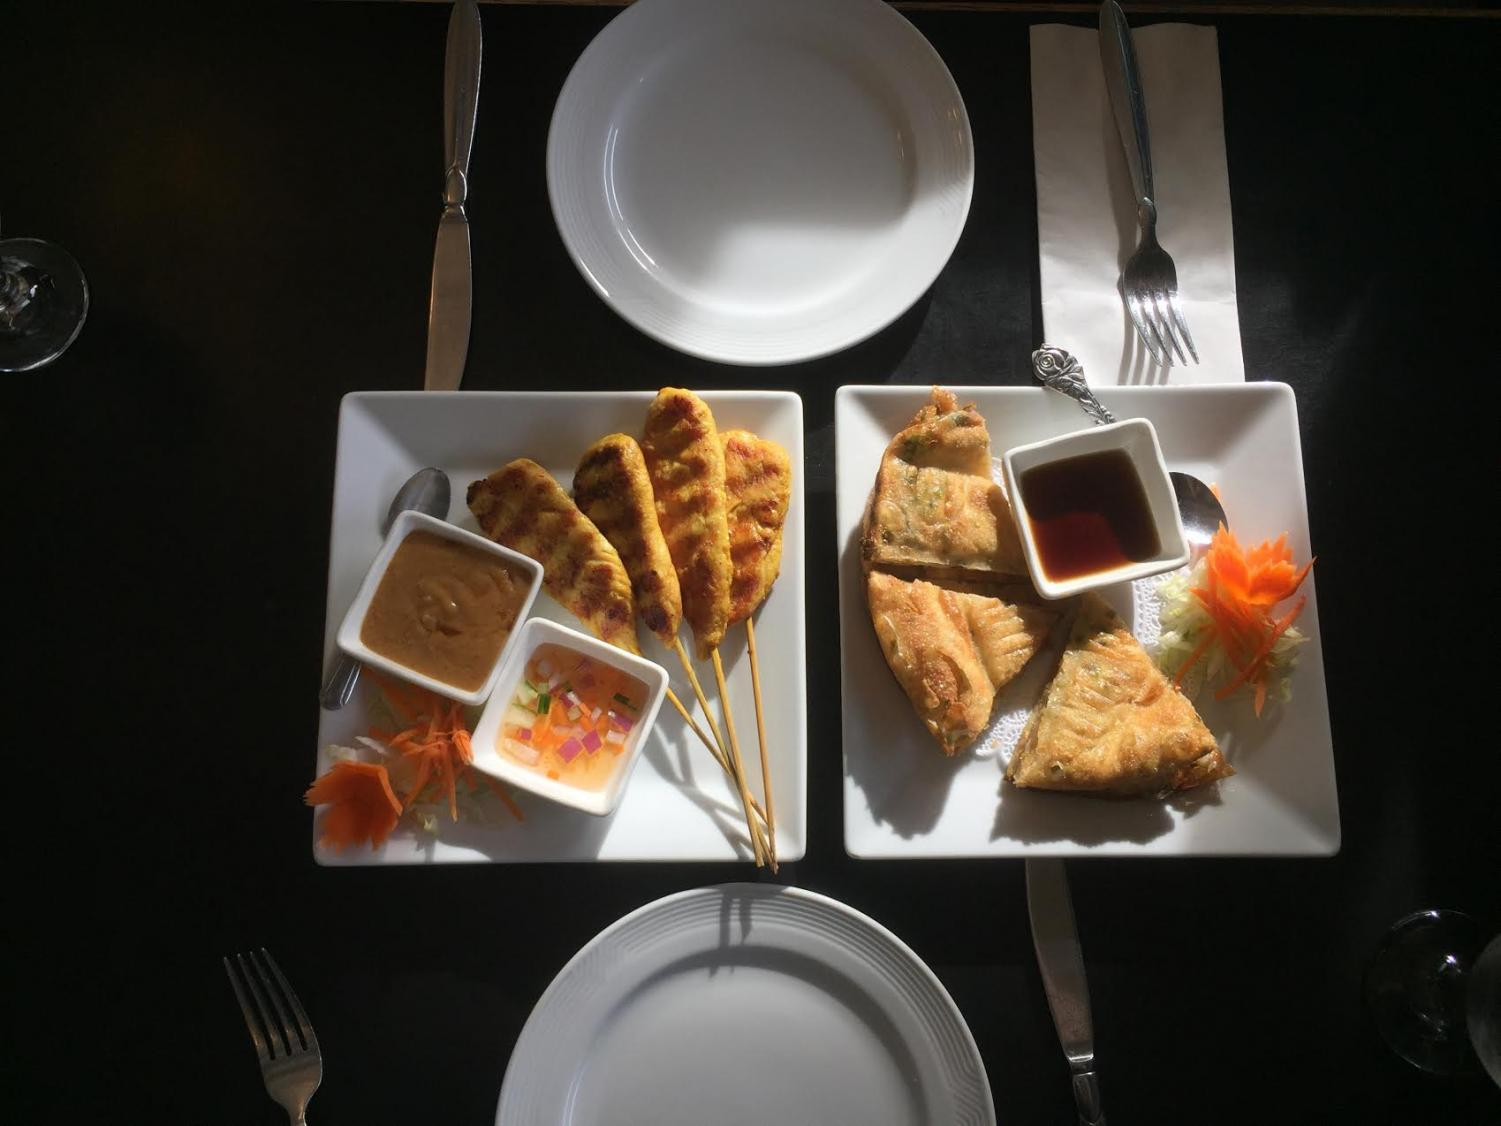 Yoong Tong, a local Thai restaurant,  provides a satisfactory dining experience.